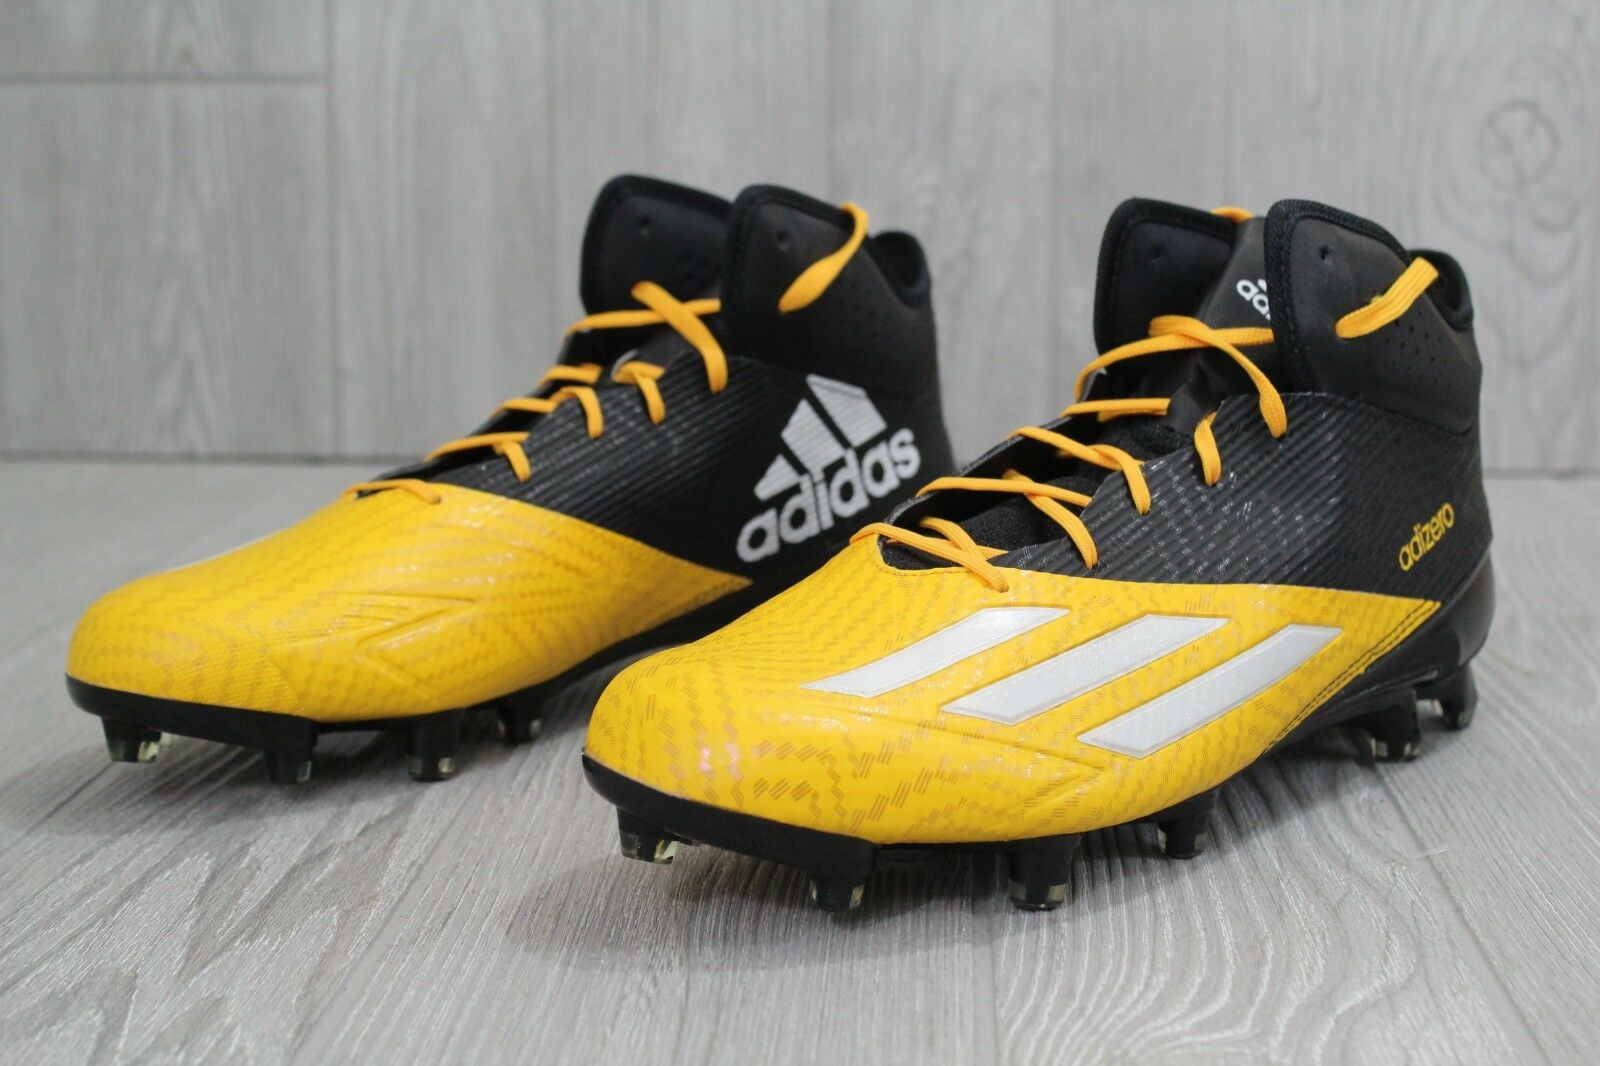 604235c1ea6 ... 29 Adidas Adizero Adizero Adizero 5 Star 5.0 Mens Football Lacrosse  Cleats Q16077 Yellow US 11.5 ...